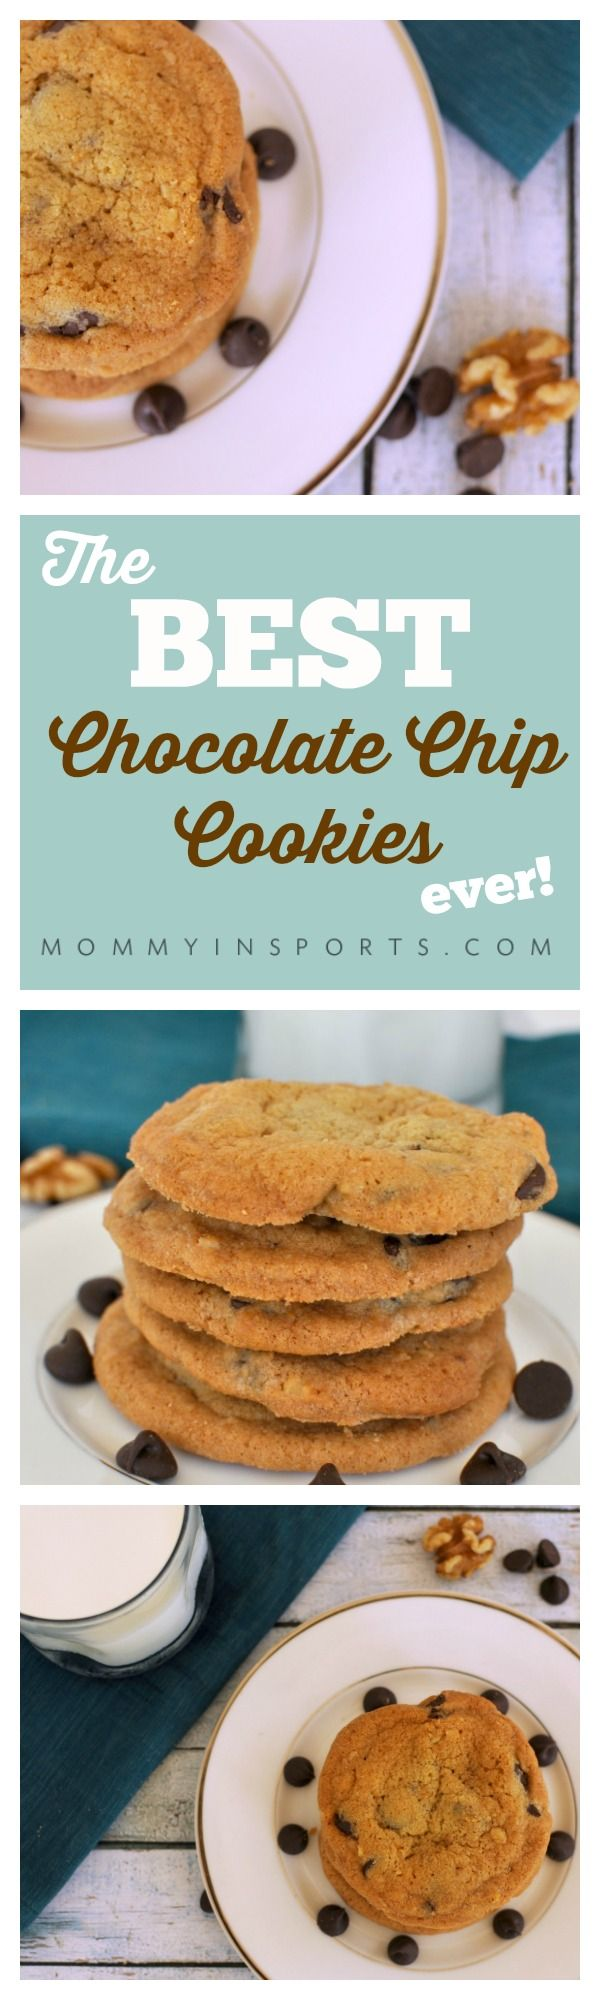 The BEST Chocolate Chip Cookies ever!  Crispy on the outside, soft on the inside, and absolutely decadent!  The only recipe you'll ever need!